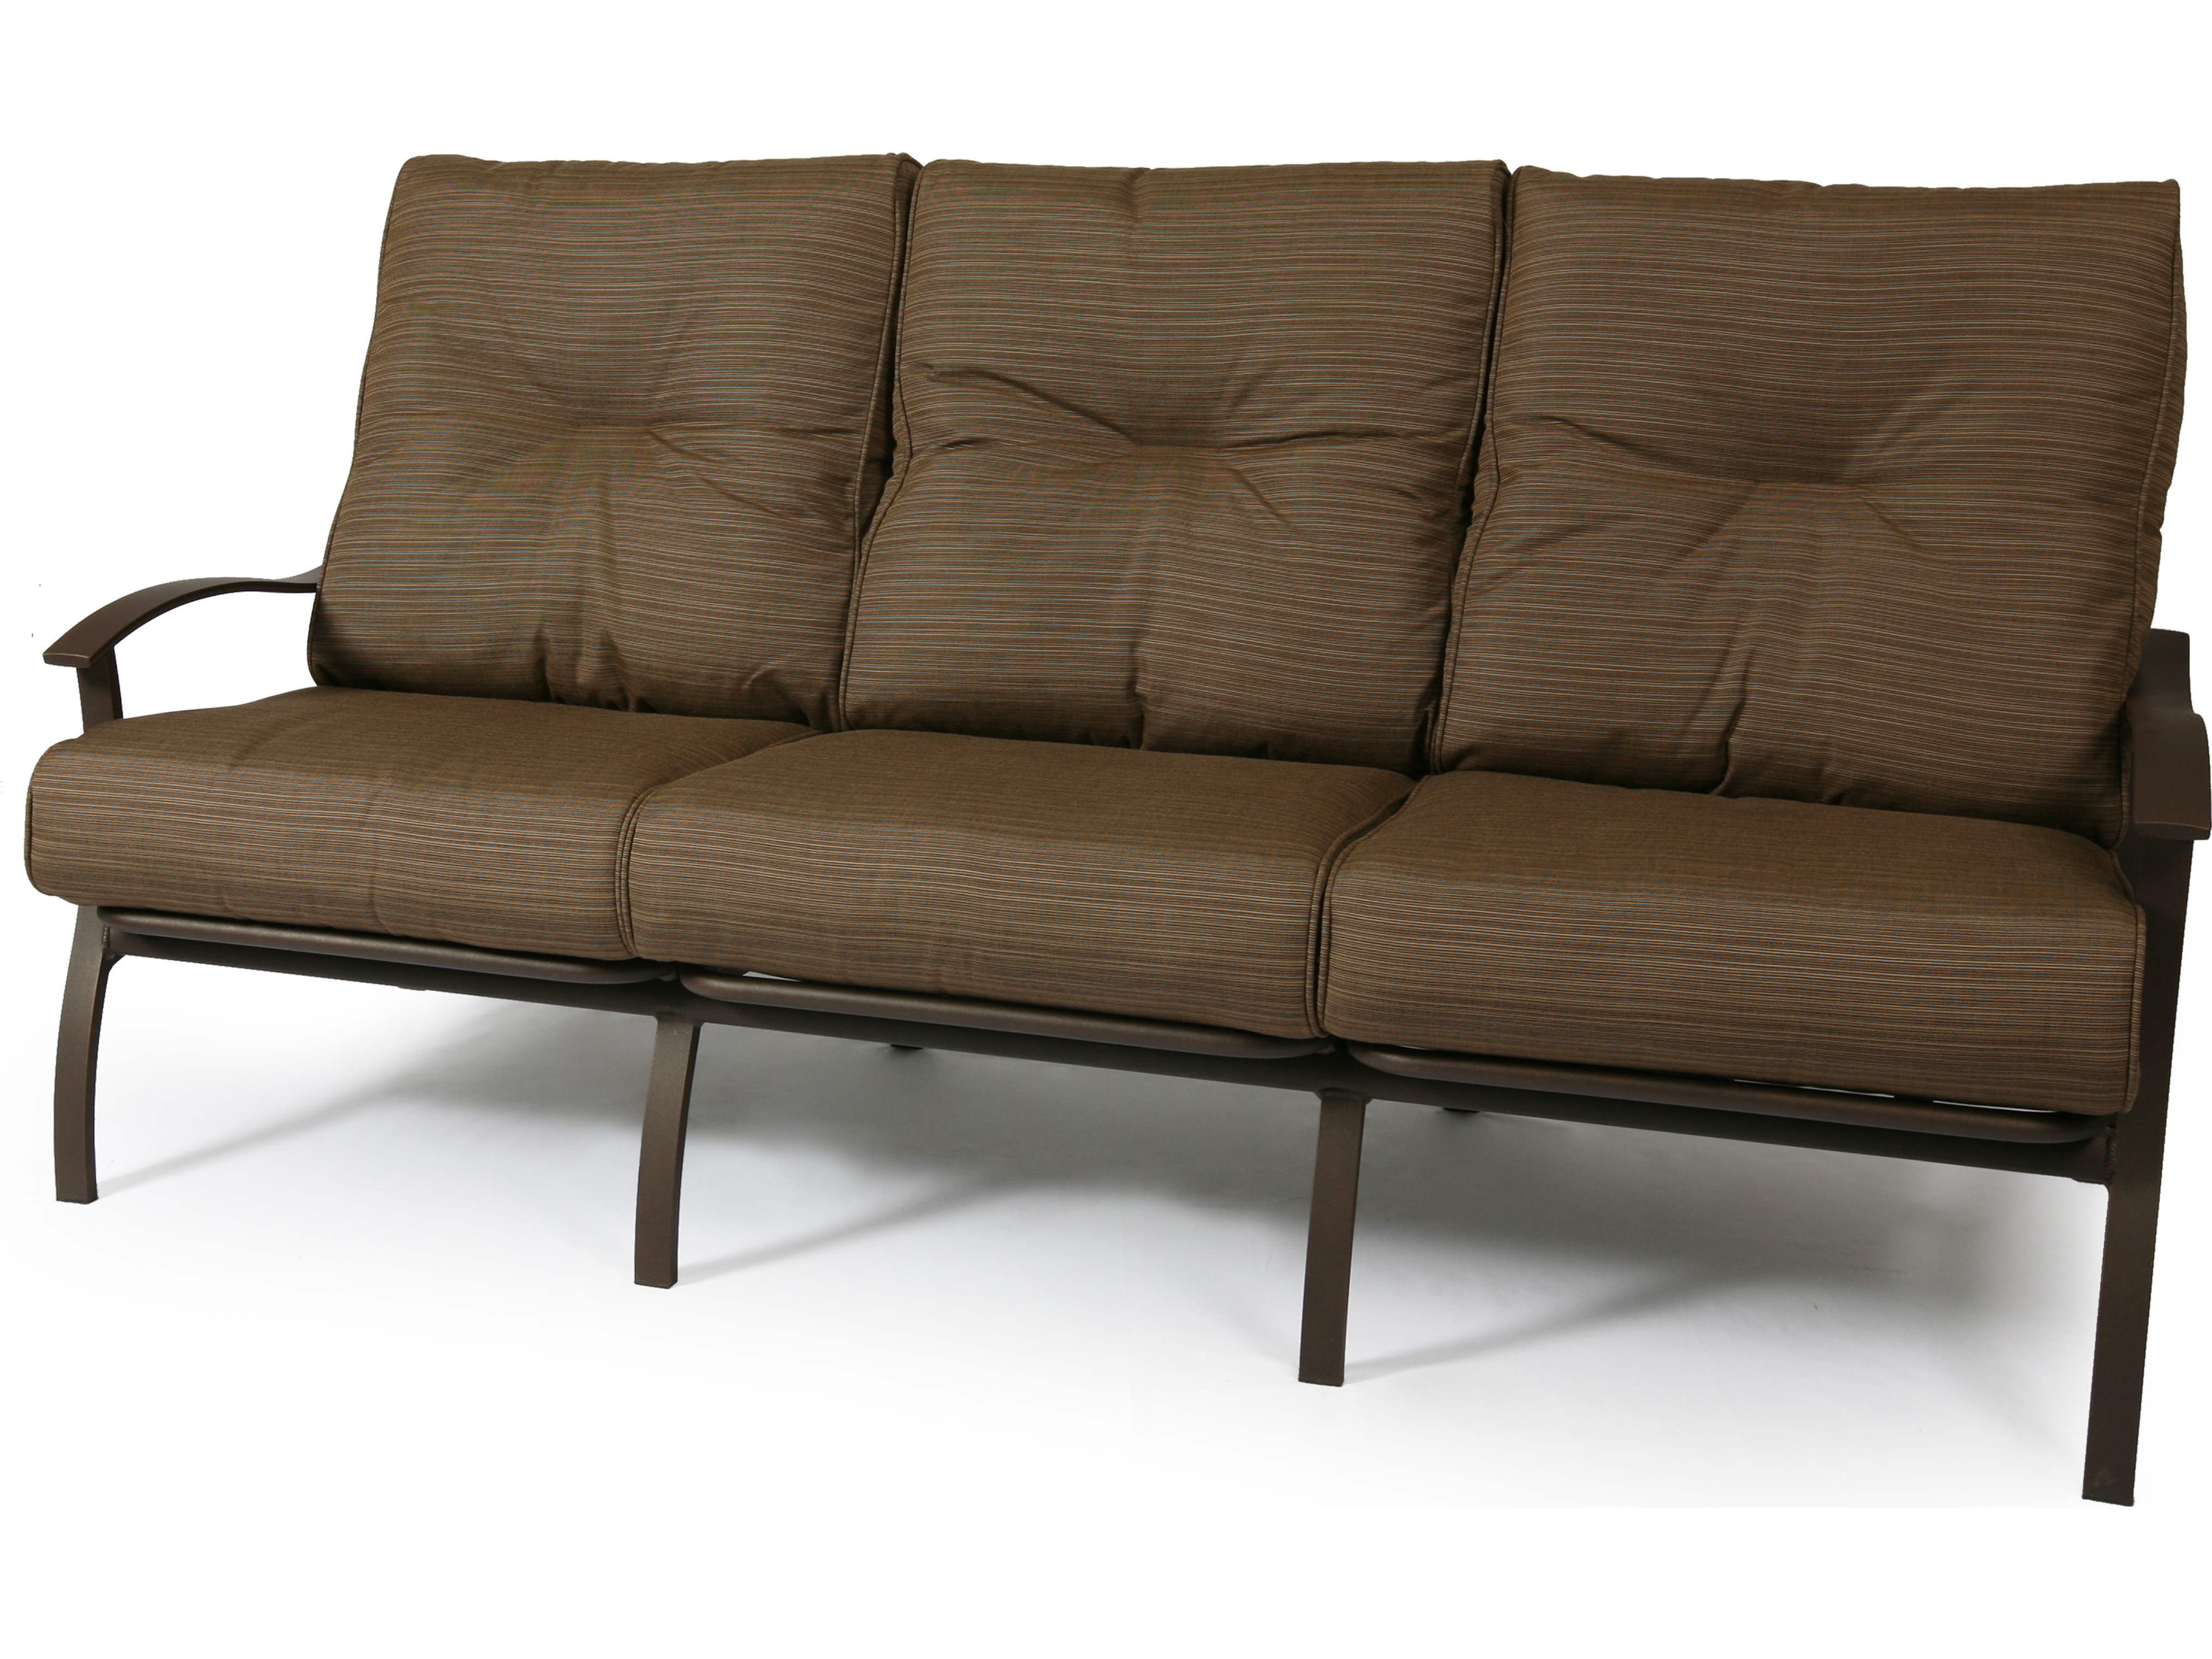 Mallin Albany Replacement Cushions Sofa